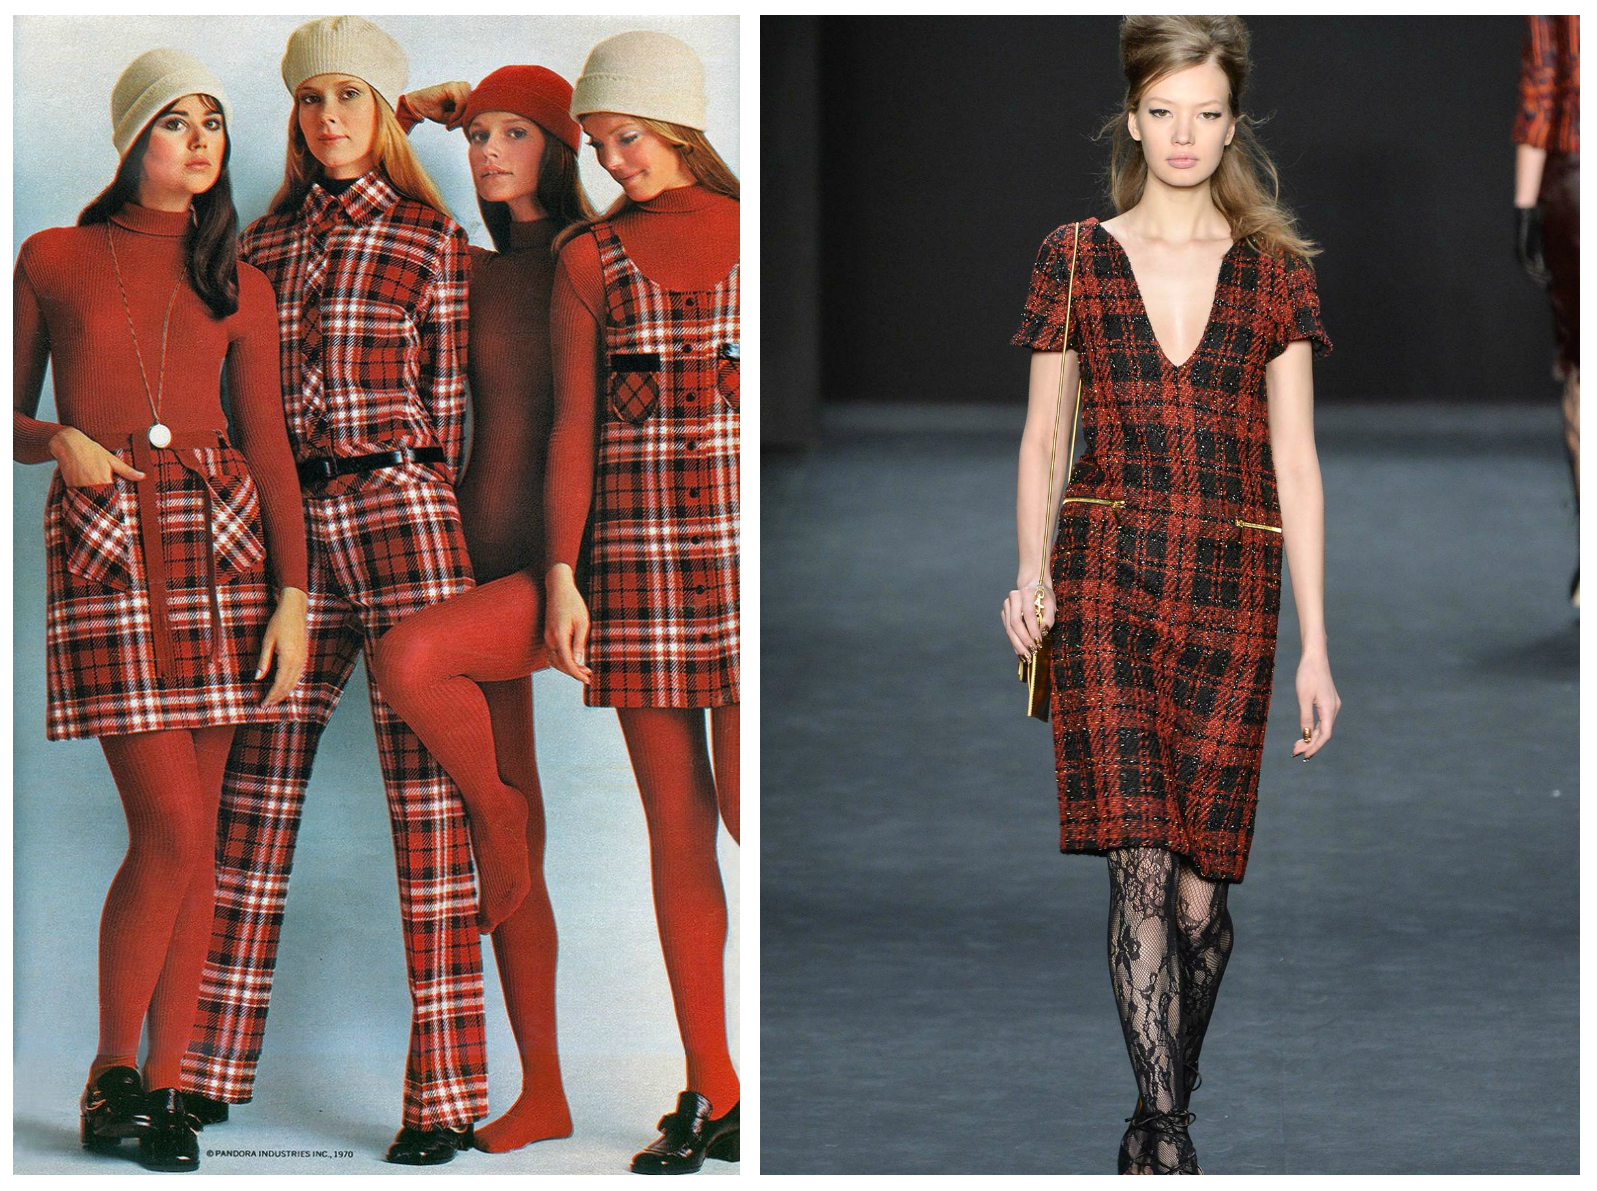 From left to right: Pandora Inc.'s 1970 collection featuring red plaid and Badgley Mischka's collection for New York Fashion Week, Fall 2015.